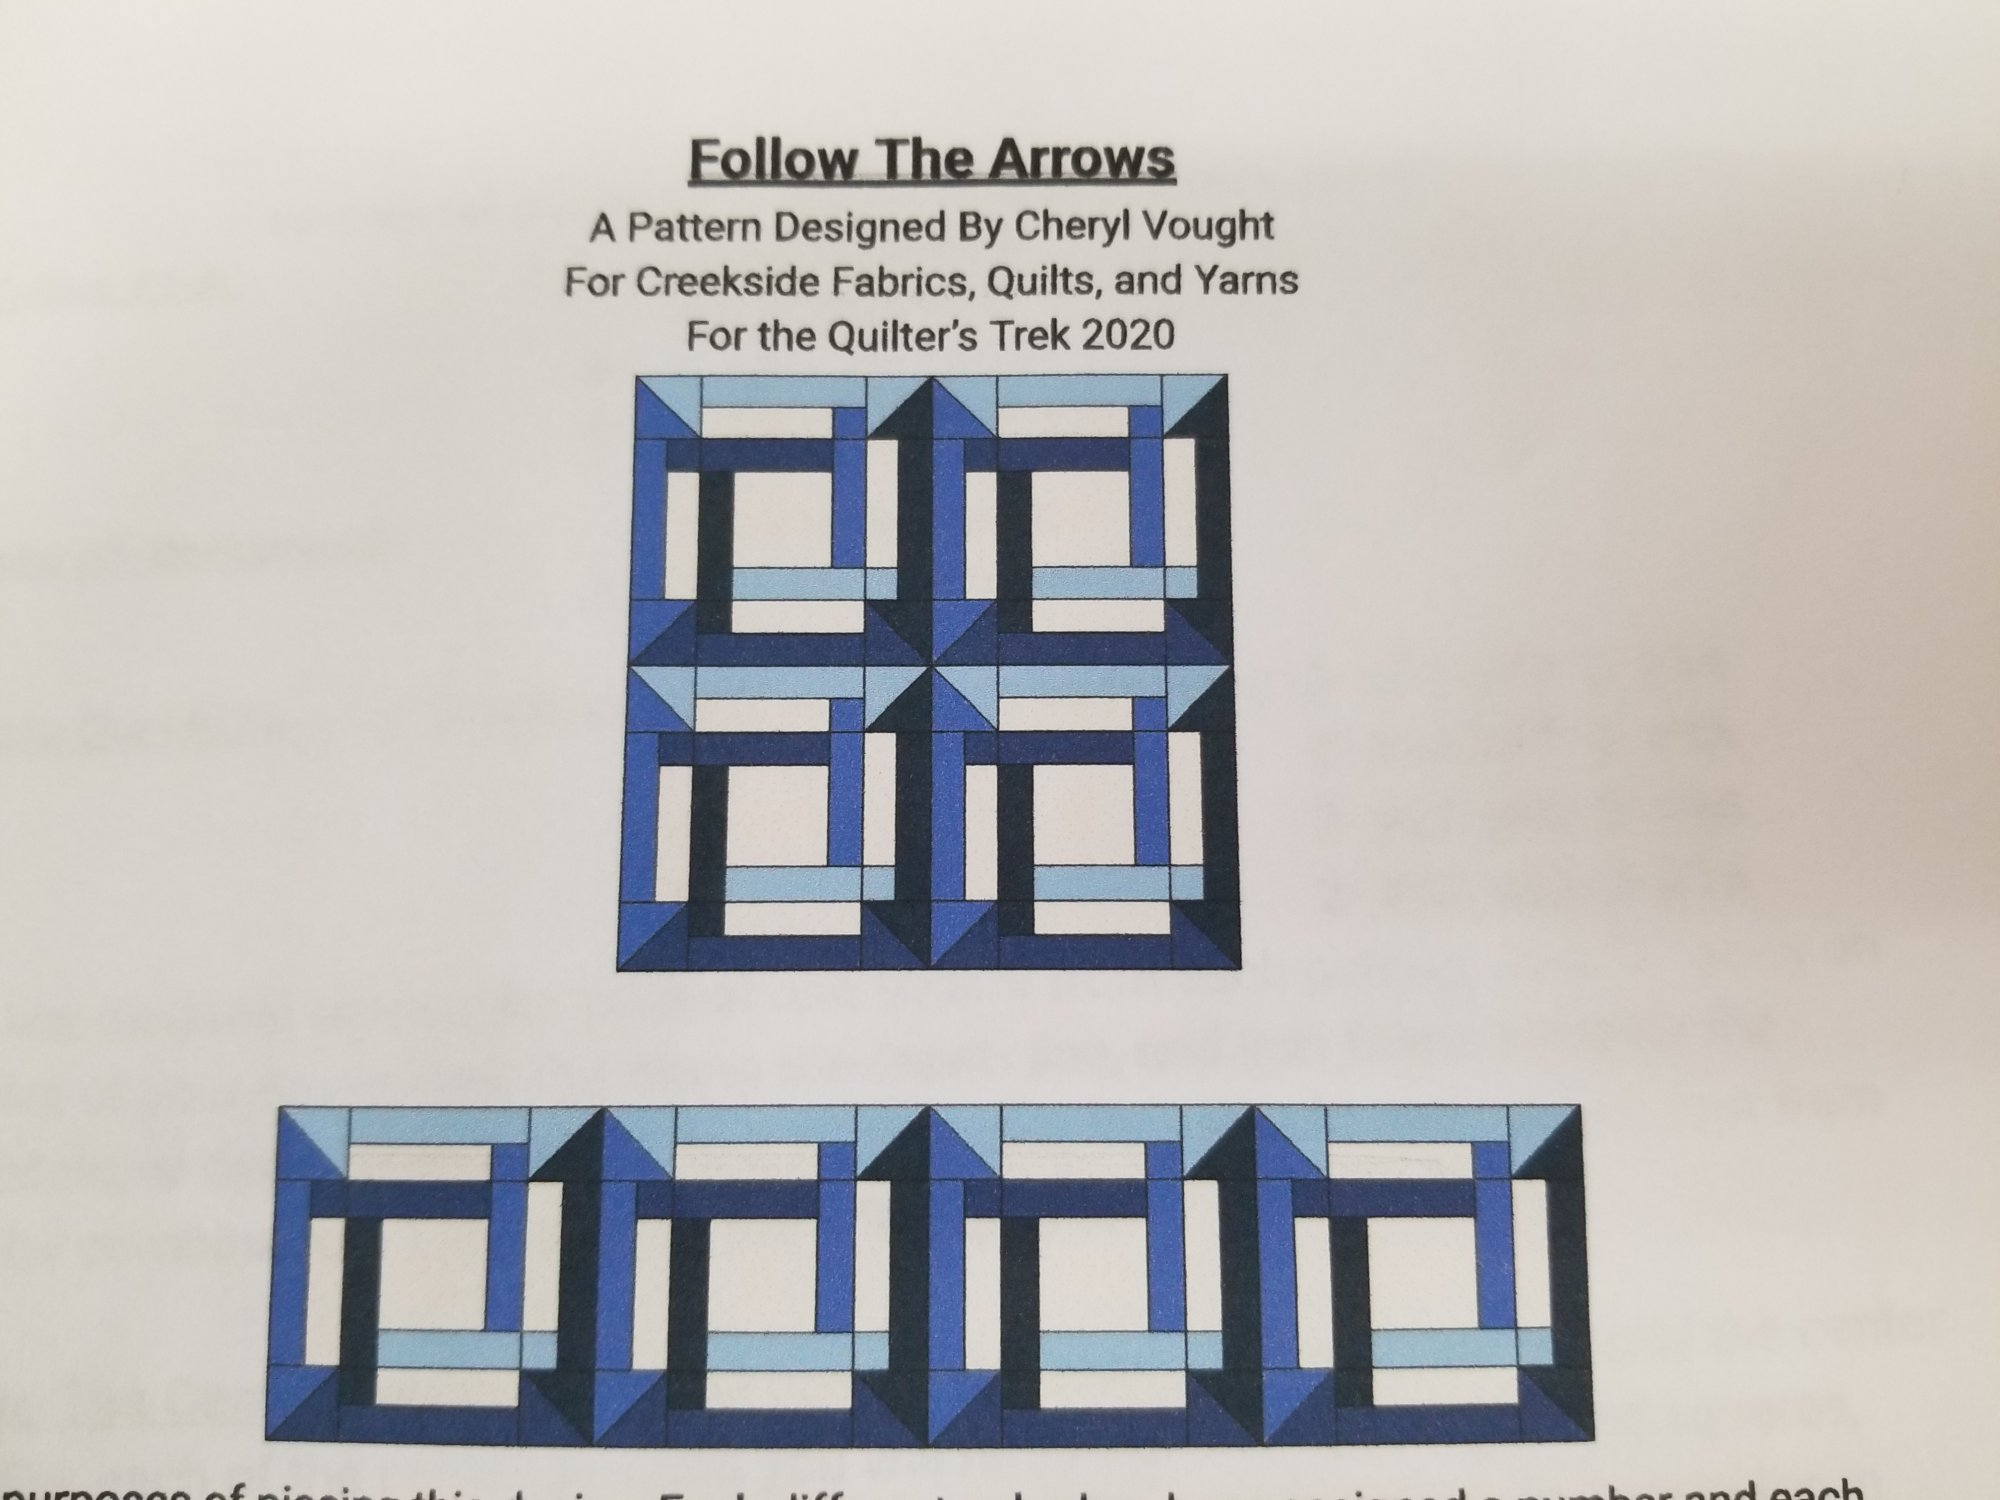 Quilter's Trek 2020 True Blue- Follow The Arrows Quilt Block Kit (Formerly Row By Row)